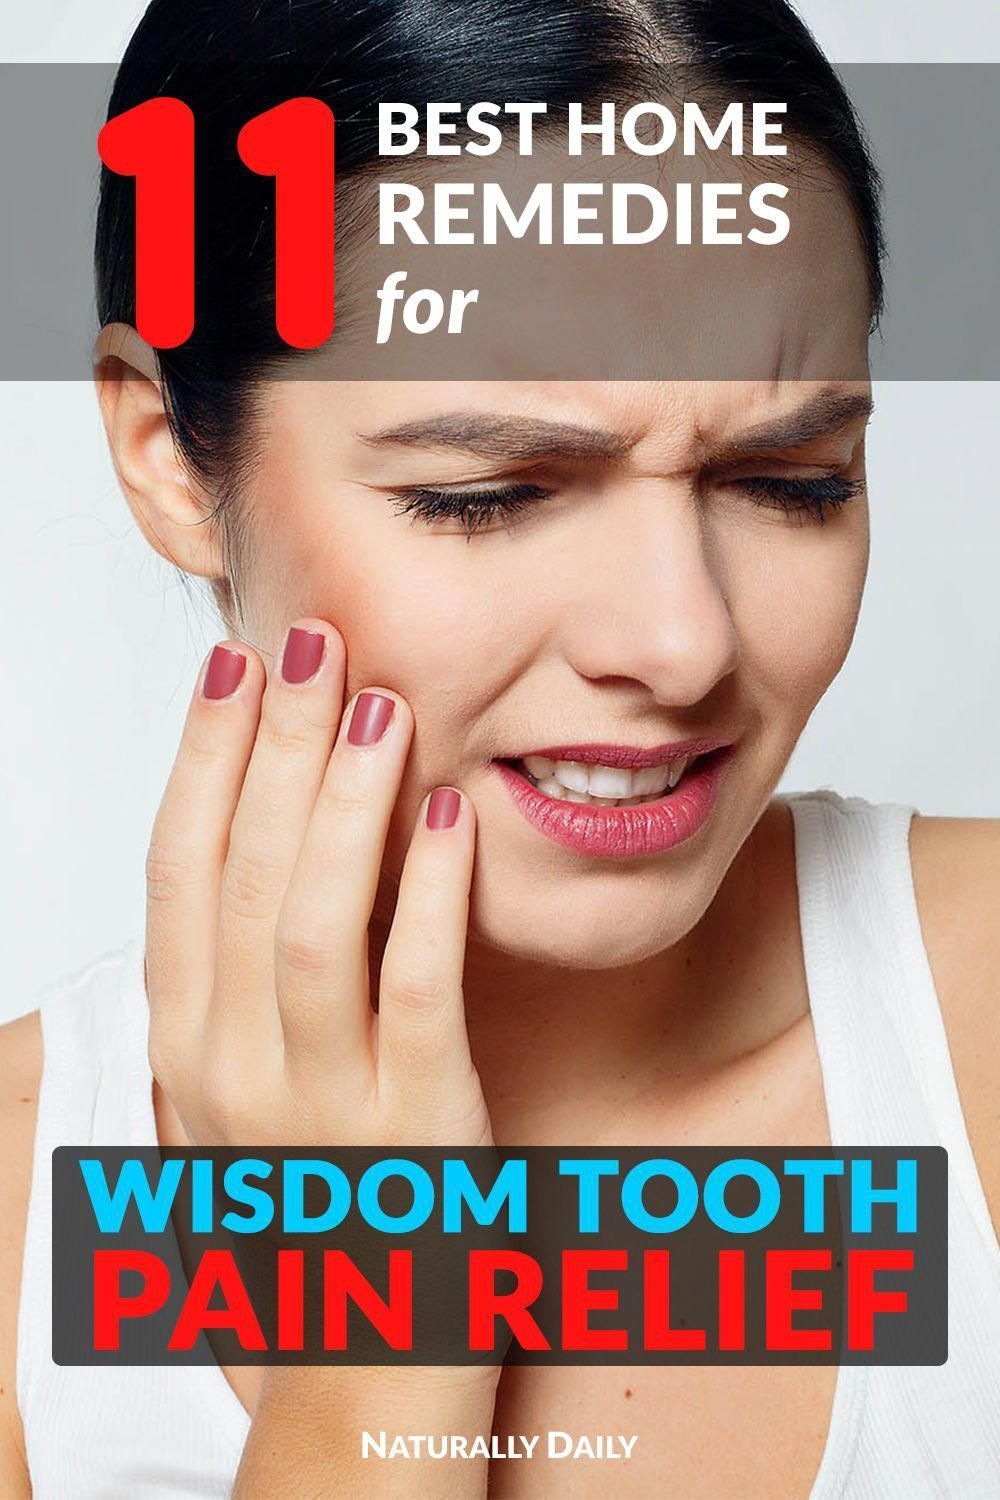 Wisdom teeth are the last set of molars that typically